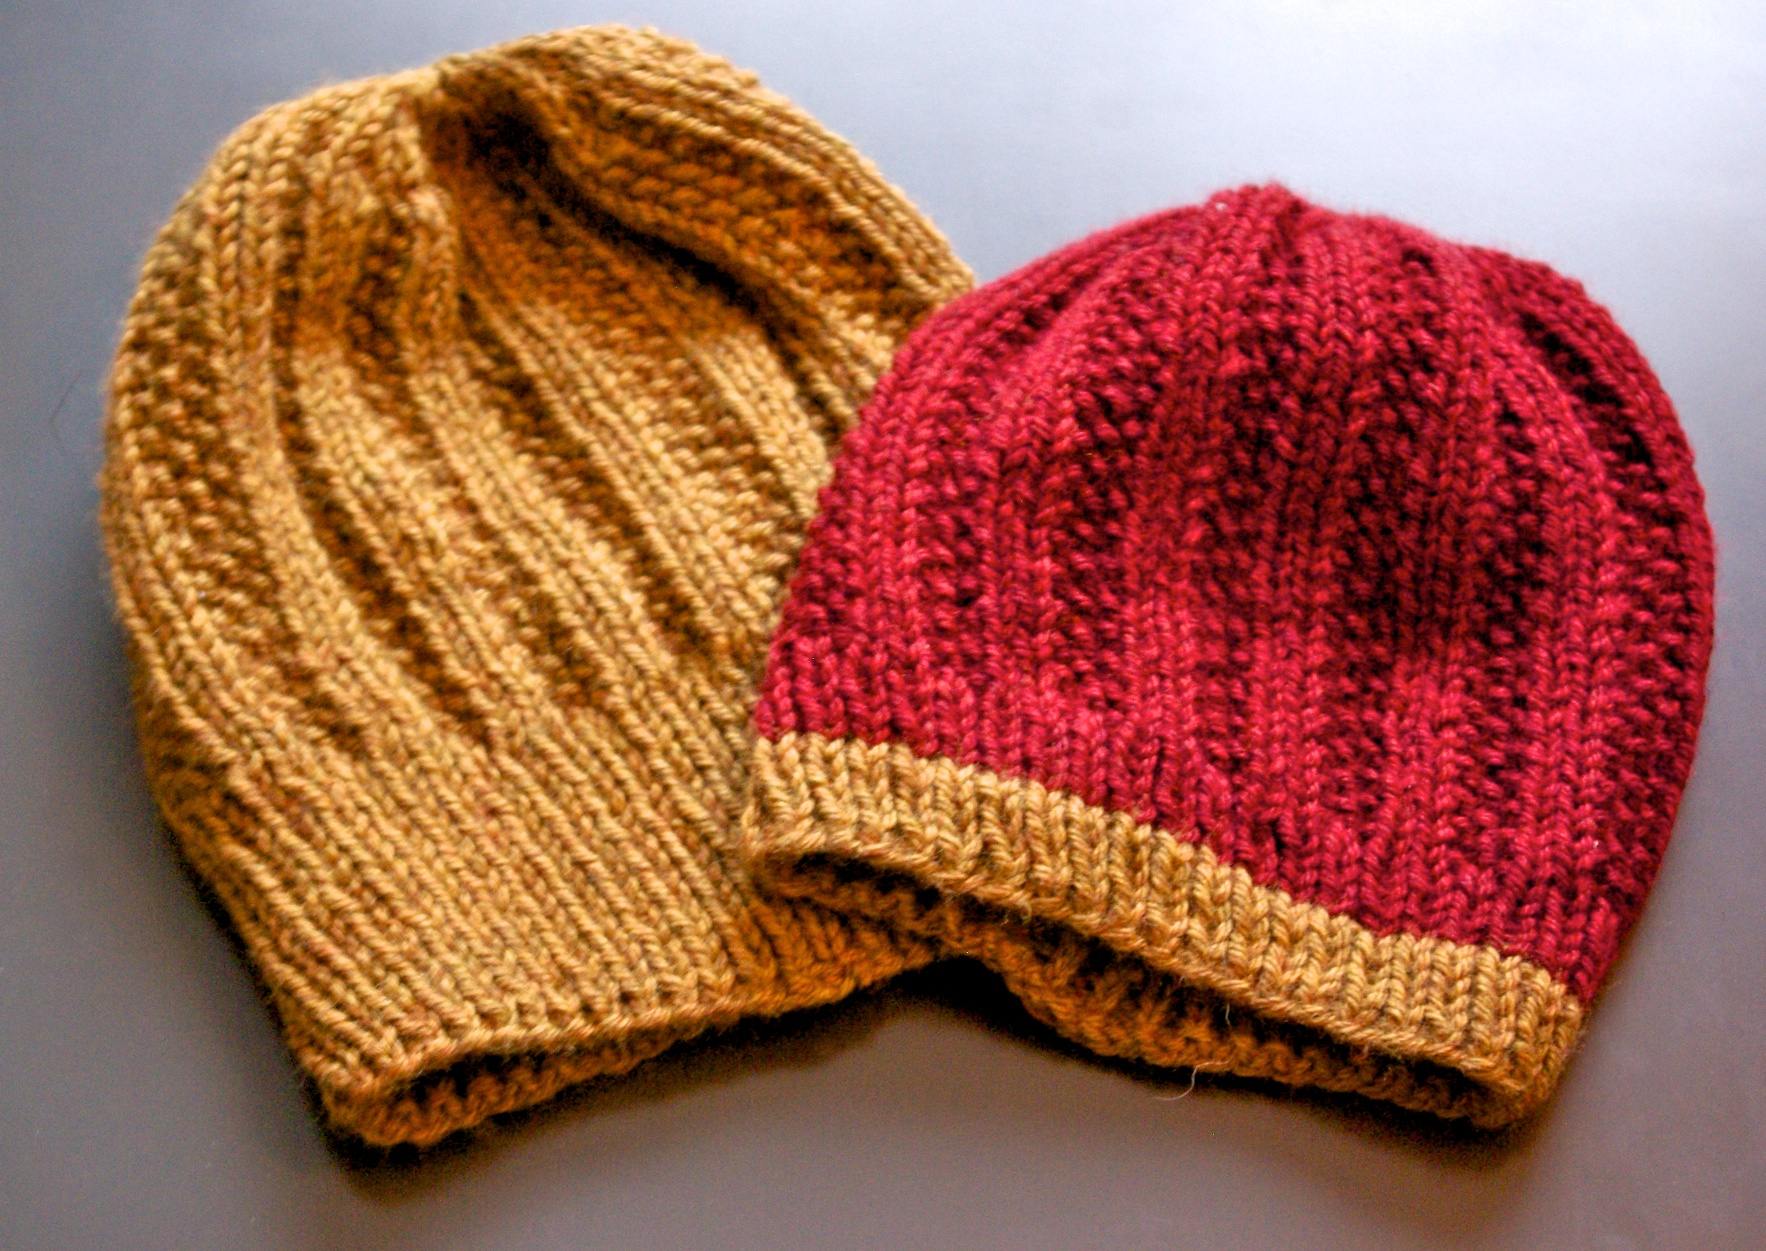 Knitting Patterns For Worsted Wool : Worsted Weight Knitting Patterns Patterns Gallery